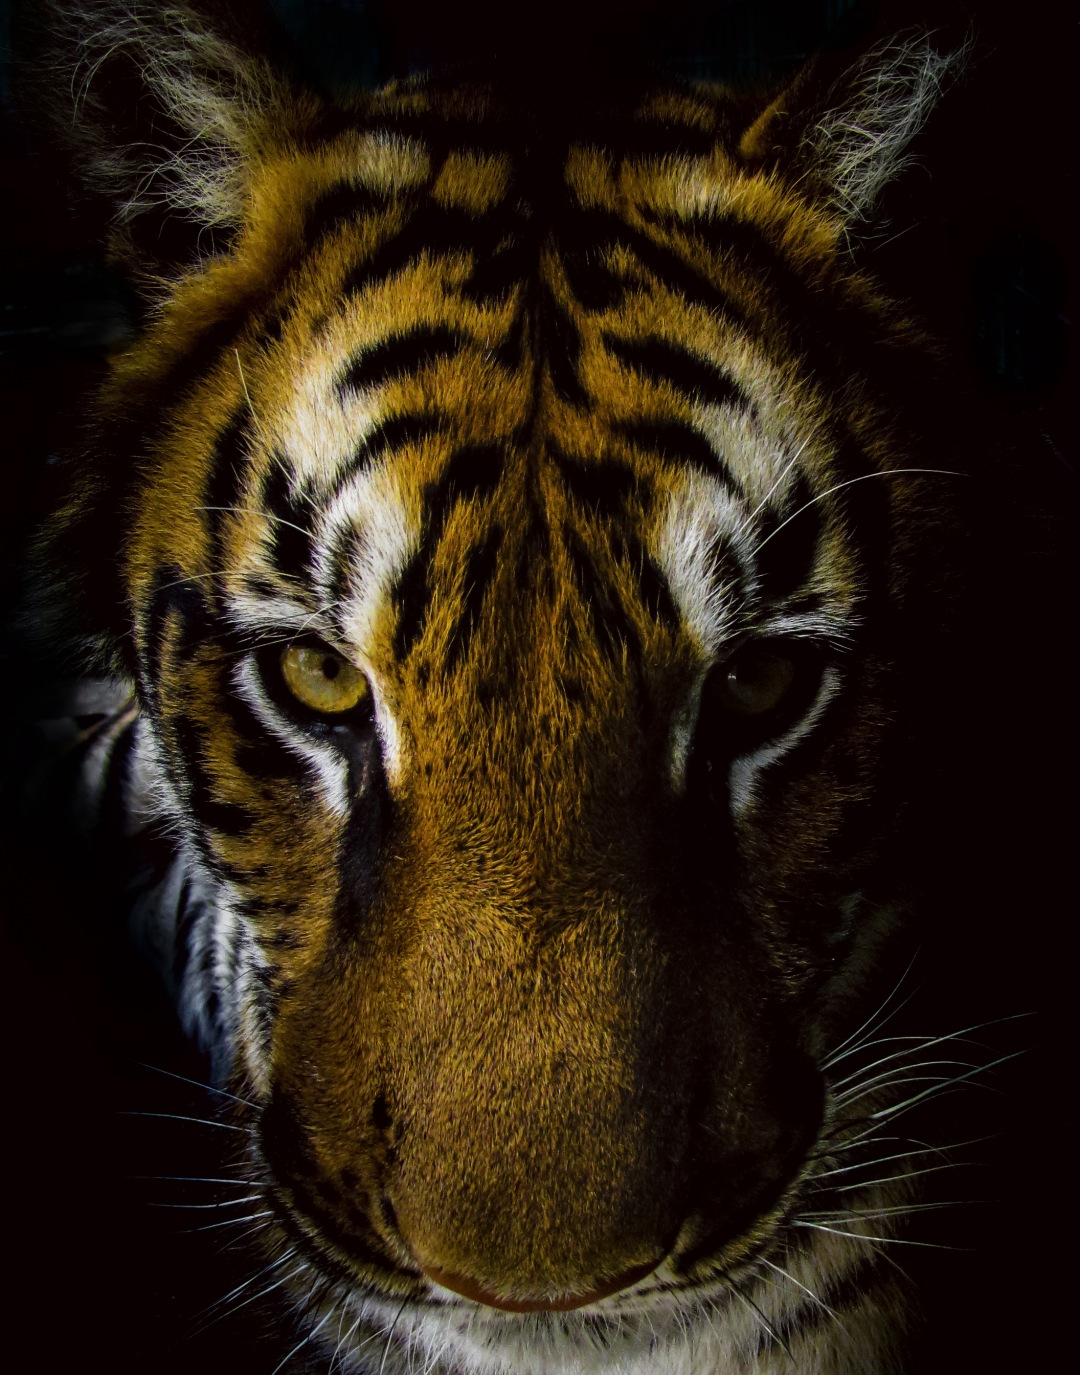 front view of tiger with black background image - free stock photo